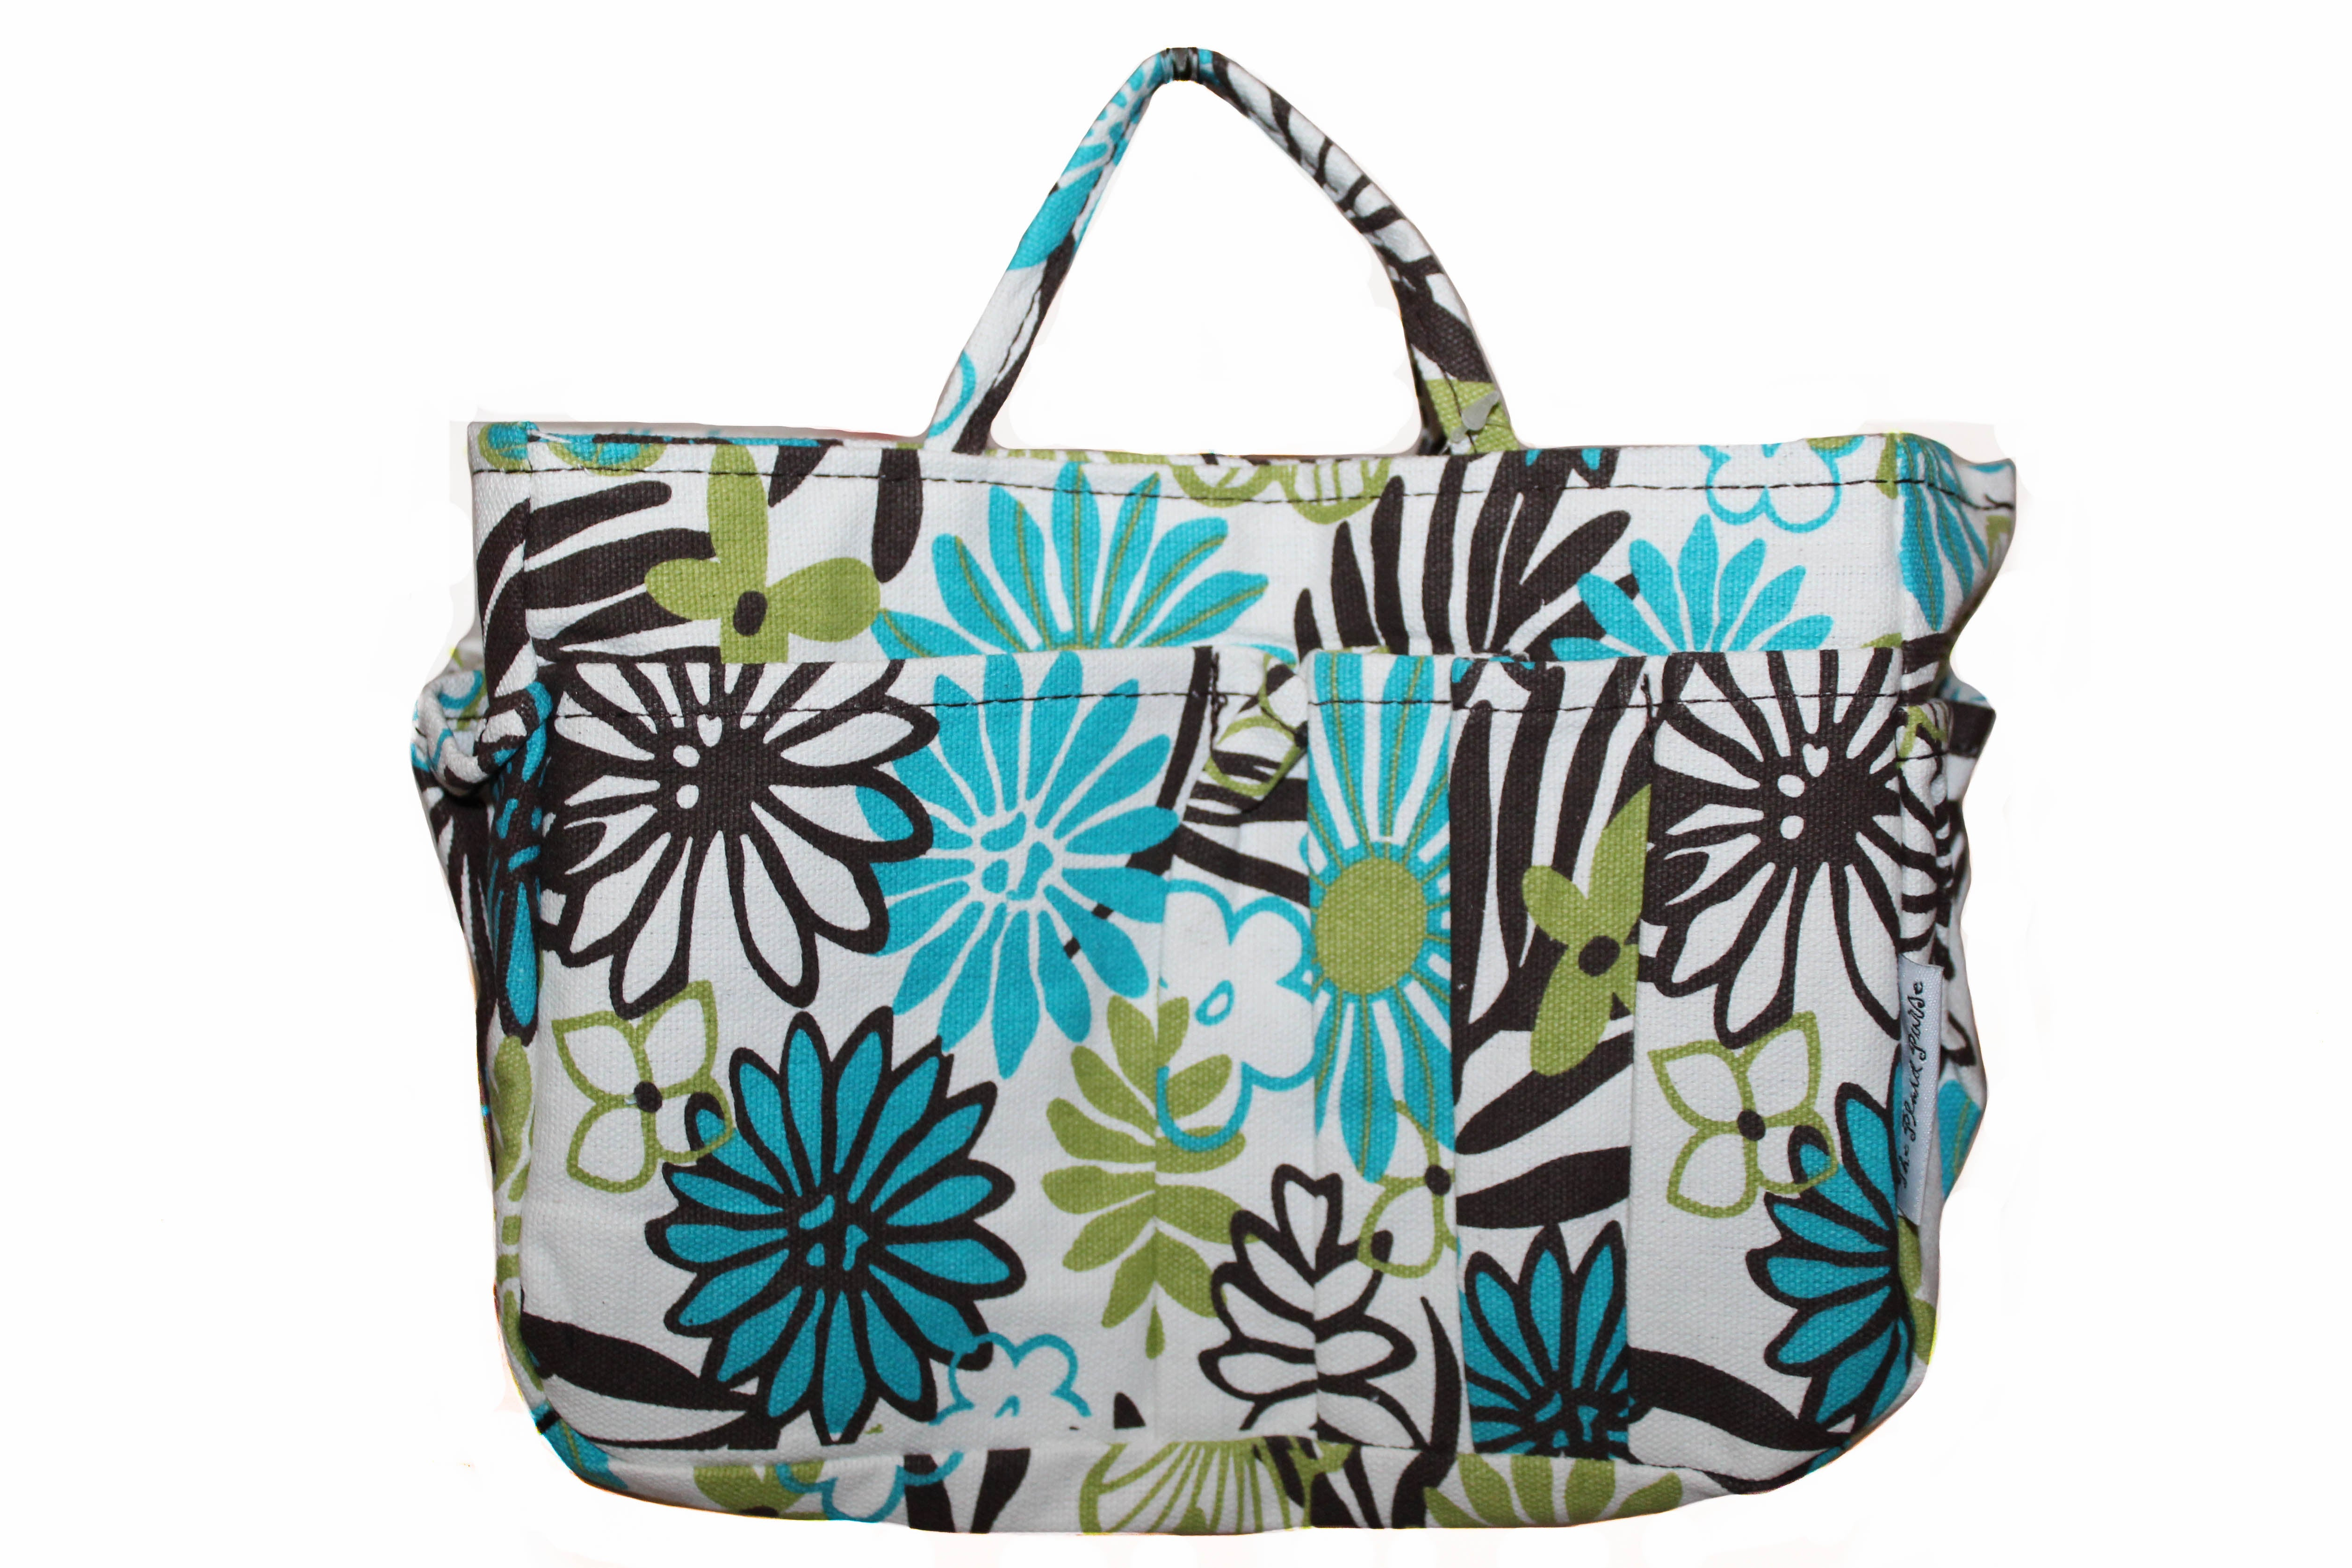 New Multicolor Flower Print Small Organizer